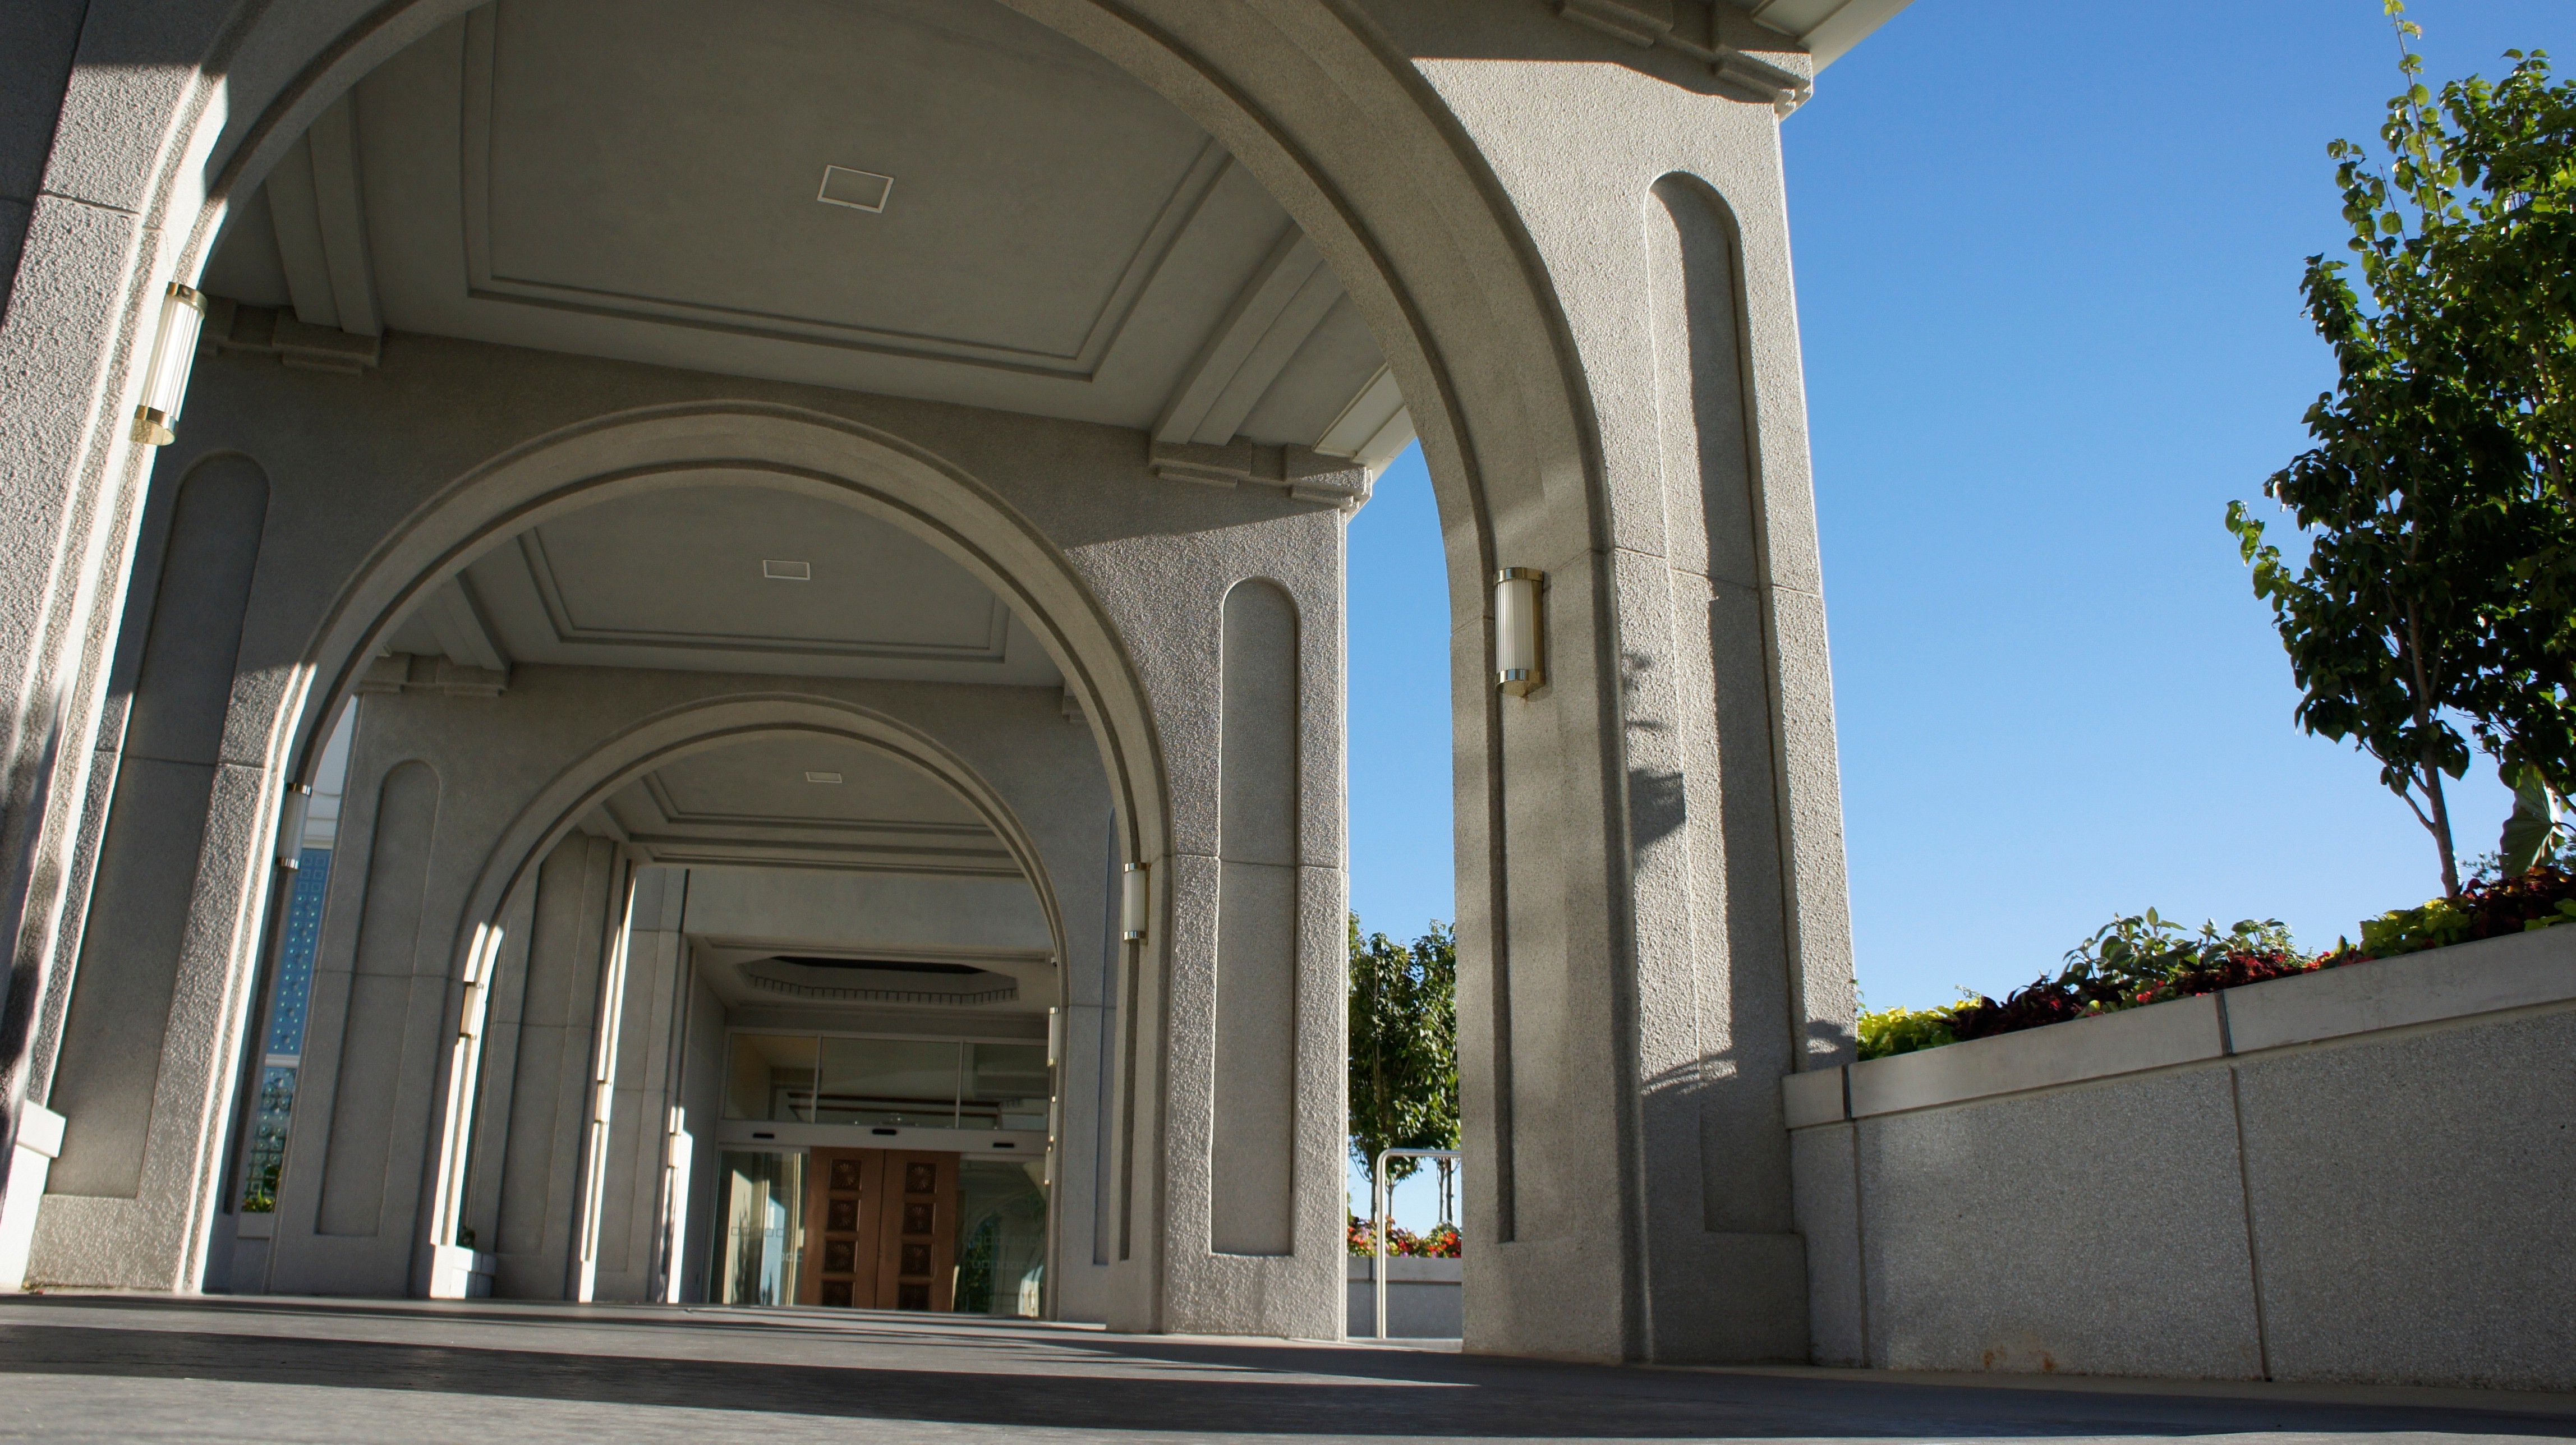 The Mount Timpanogos Utah Temple entrance, including the exterior of the temple.